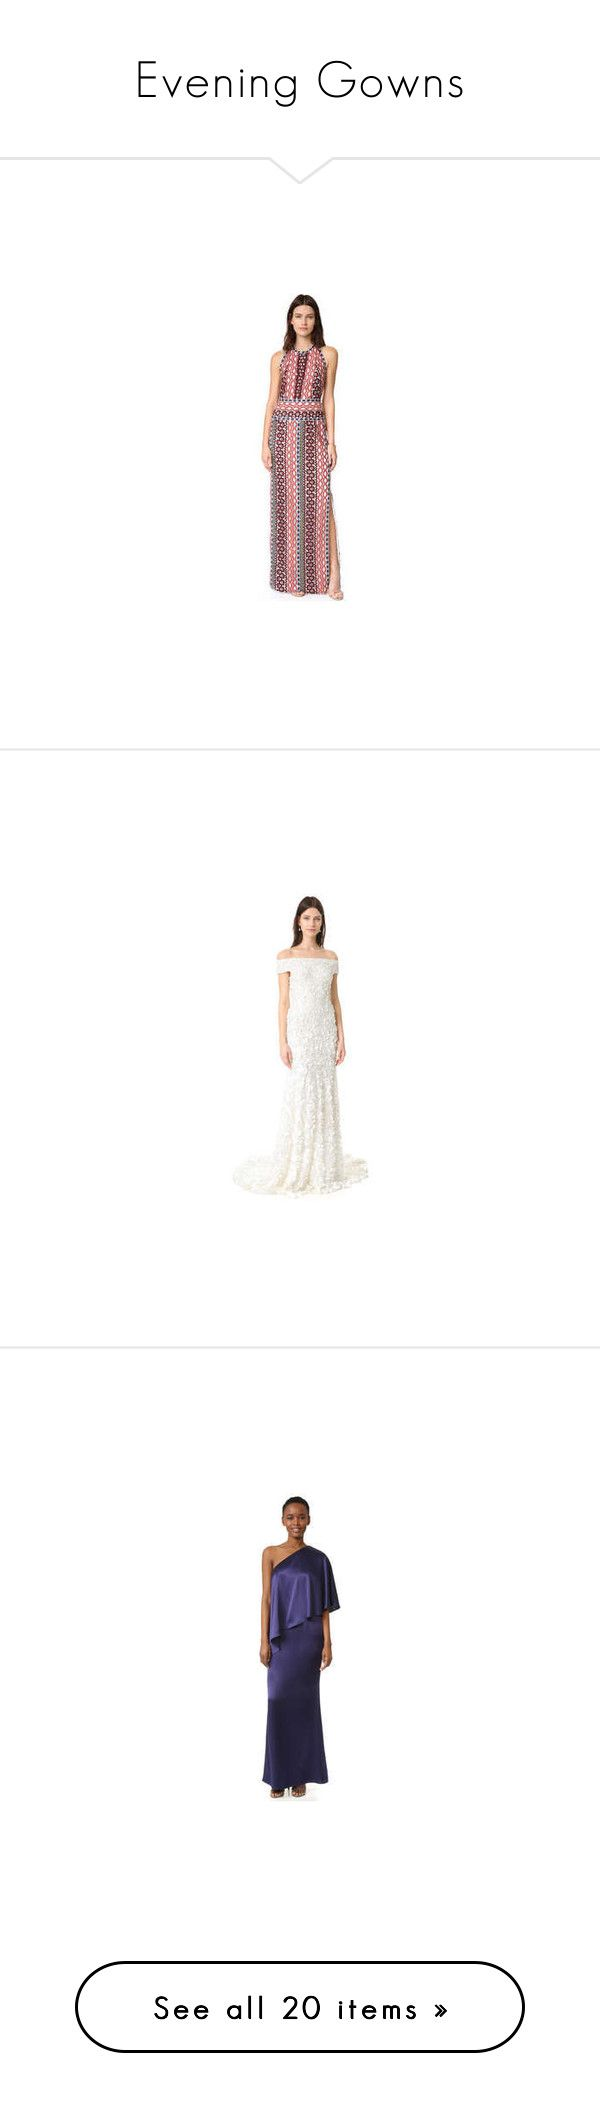 """Evening Gowns"" by modalist ❤ liked on Polyvore featuring dresses, gowns, print dress, sparkly evening gowns, crochet gown, slit gown, red dress, white gown, beaded evening gowns and graduation gown"